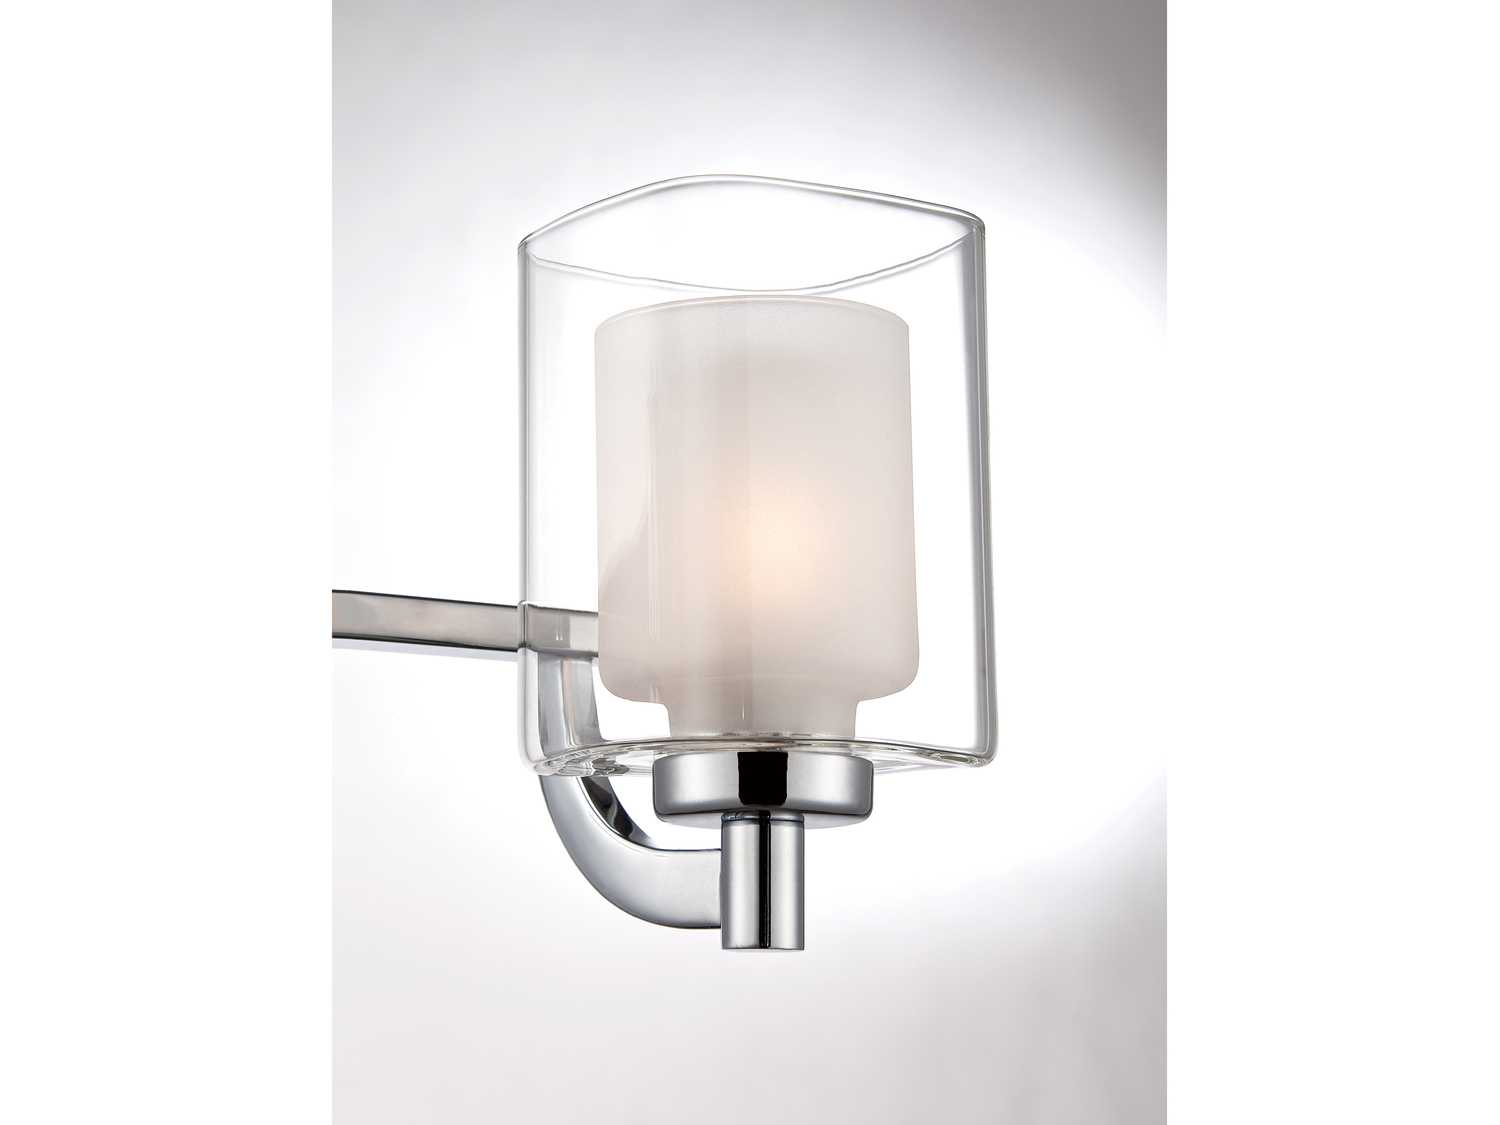 Quoizel Vanity Lights : Quoizel Kolt Bath Polished Chrome Three-Light Vanity Light KLT8603C